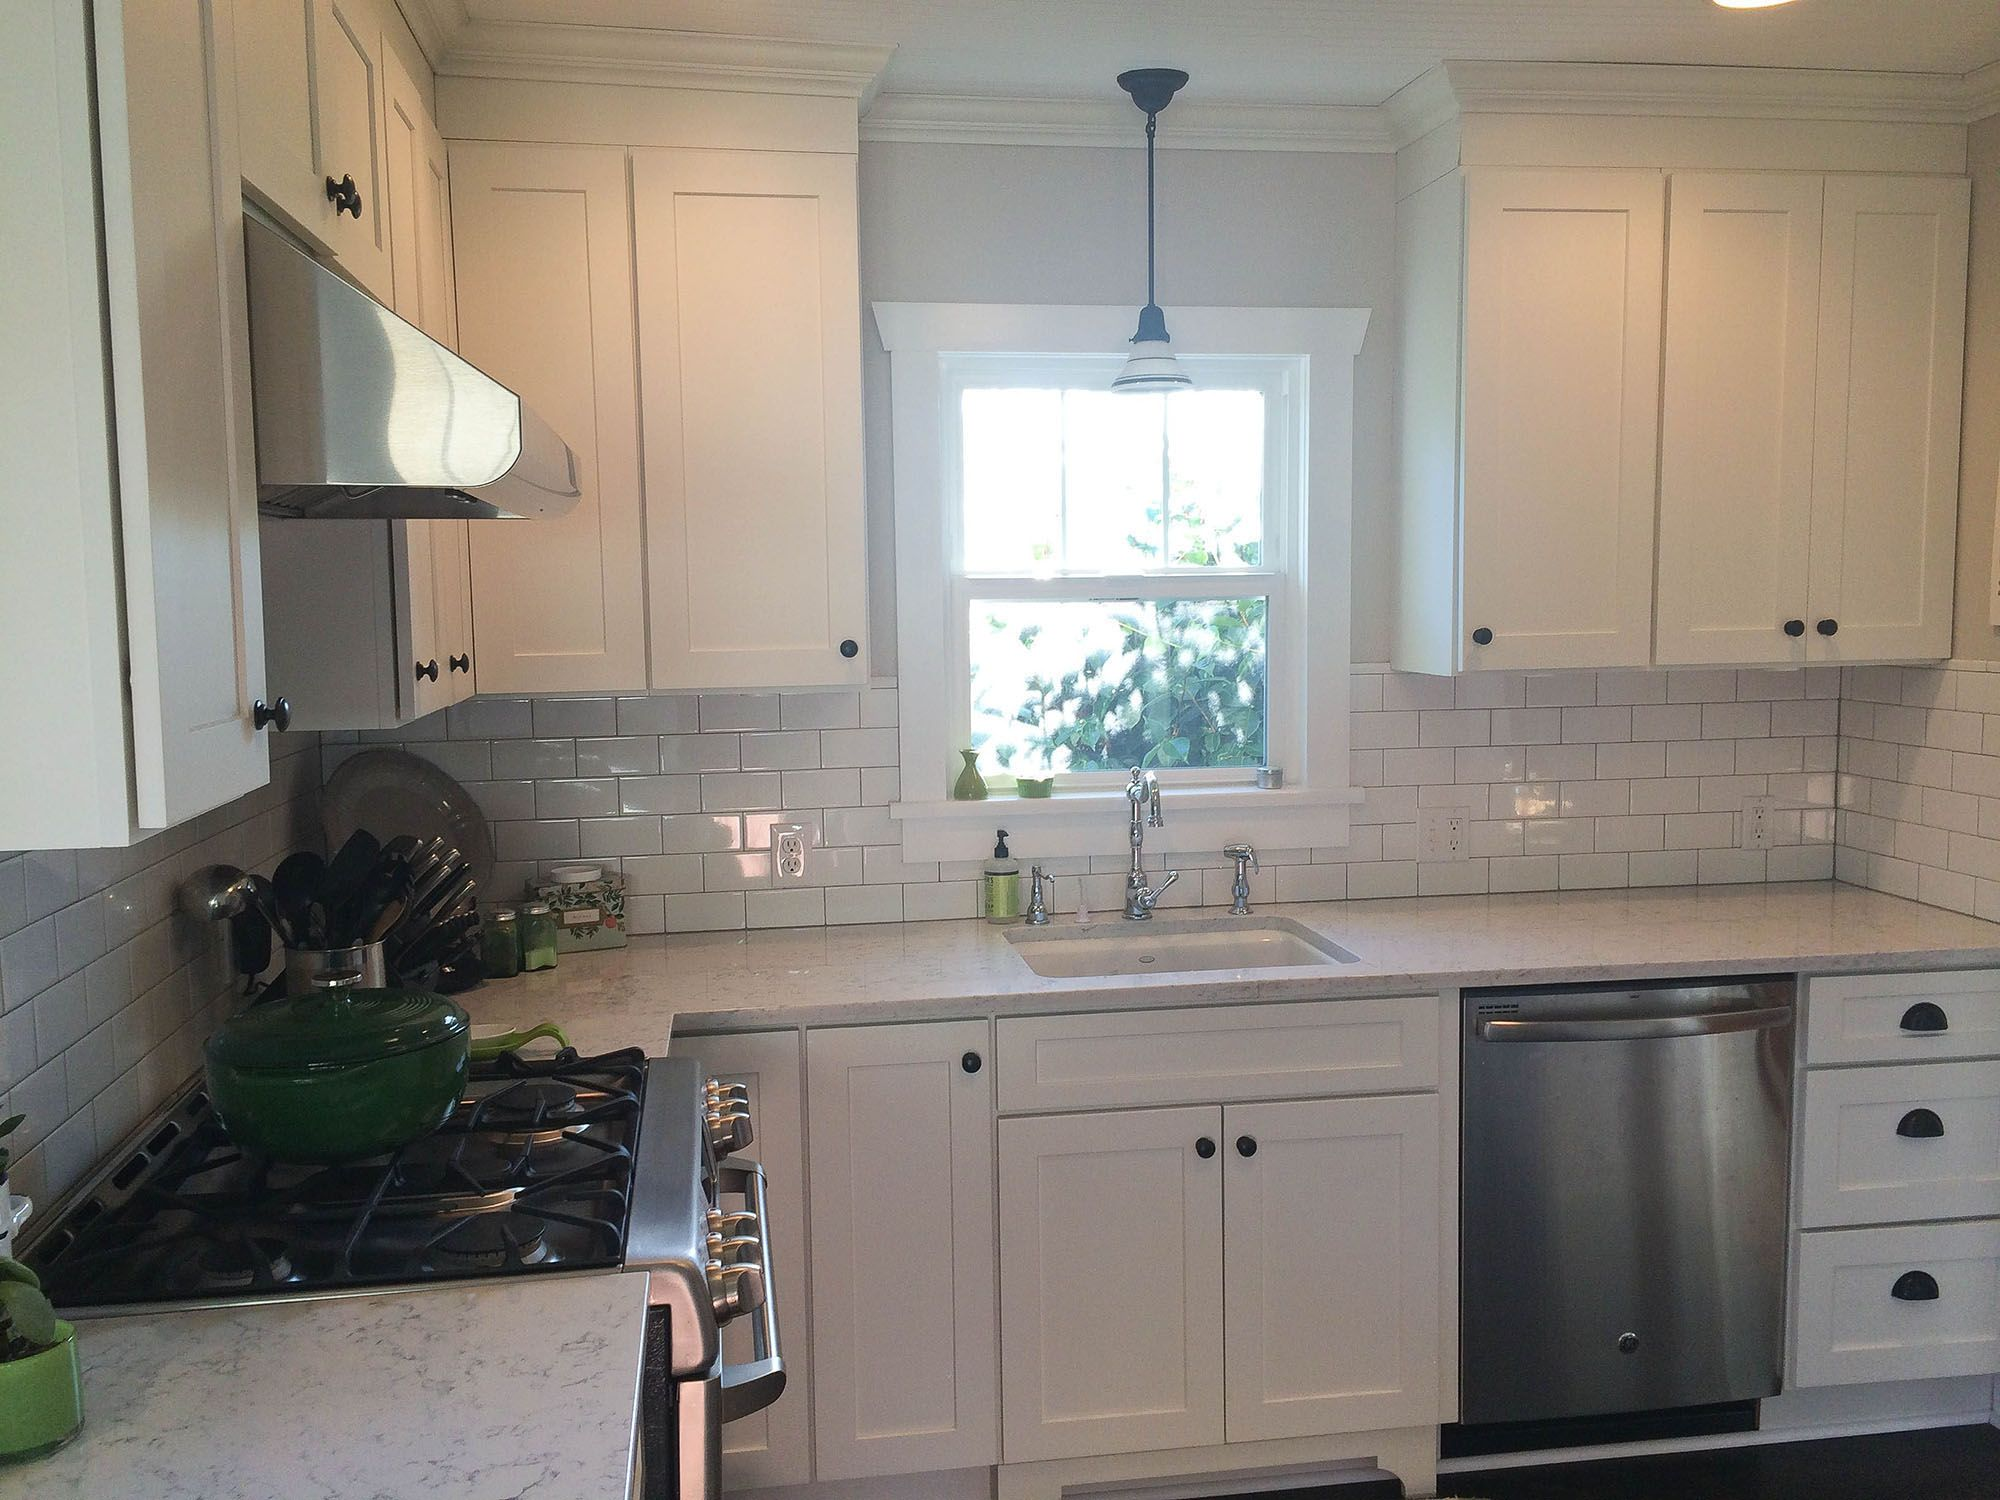 Seattle Remodeled Kitchen Has Beadboard Ceiling White Shaker Cabinets Angle Base Cabinet Traditi White Shaker Cabinets Cheap Interior Design Kitchen Remodel